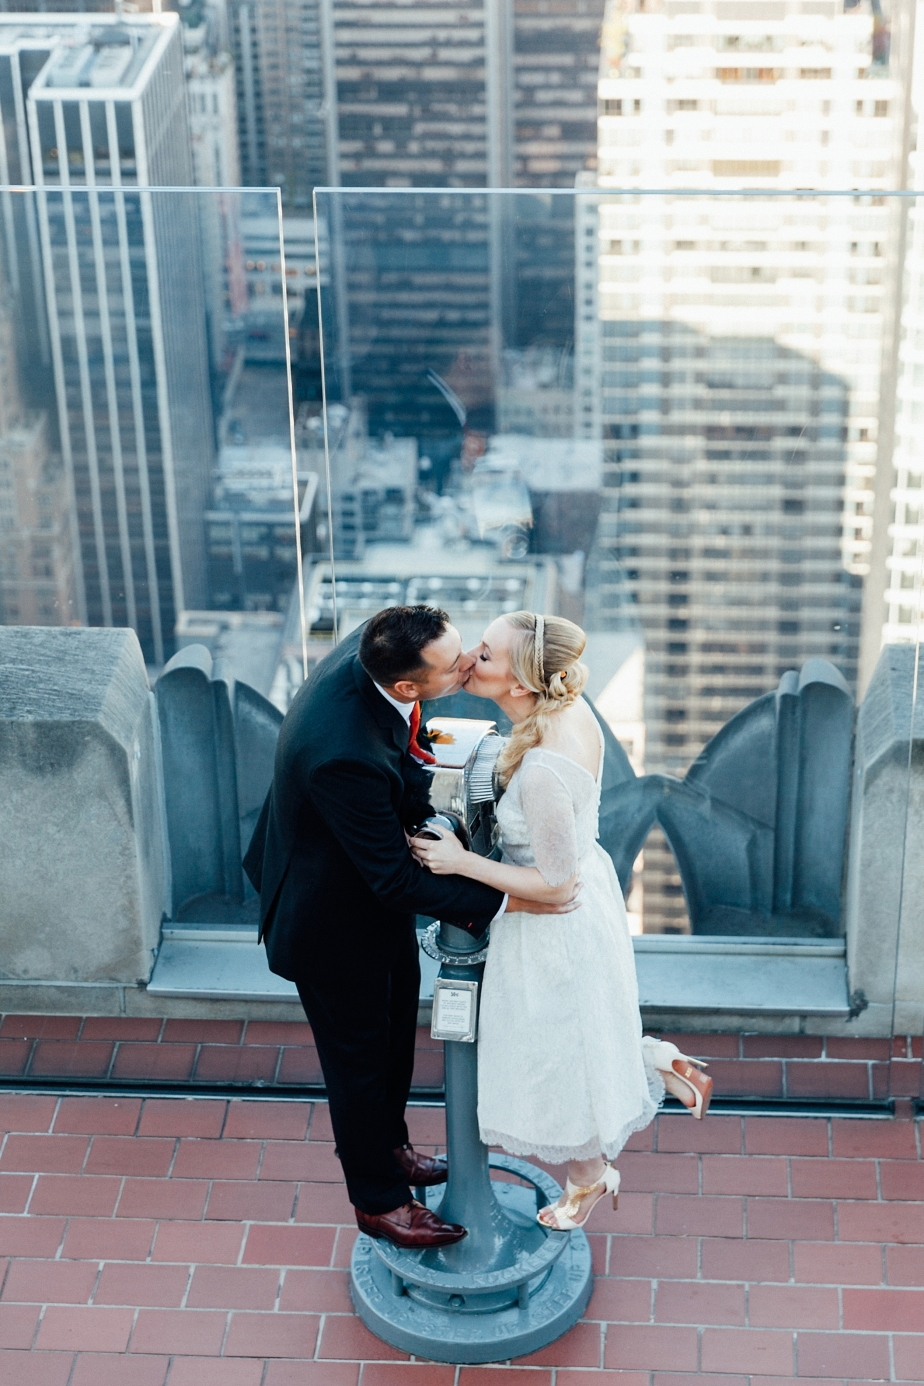 centralpark_ladiespavilion_wedding_SD-338